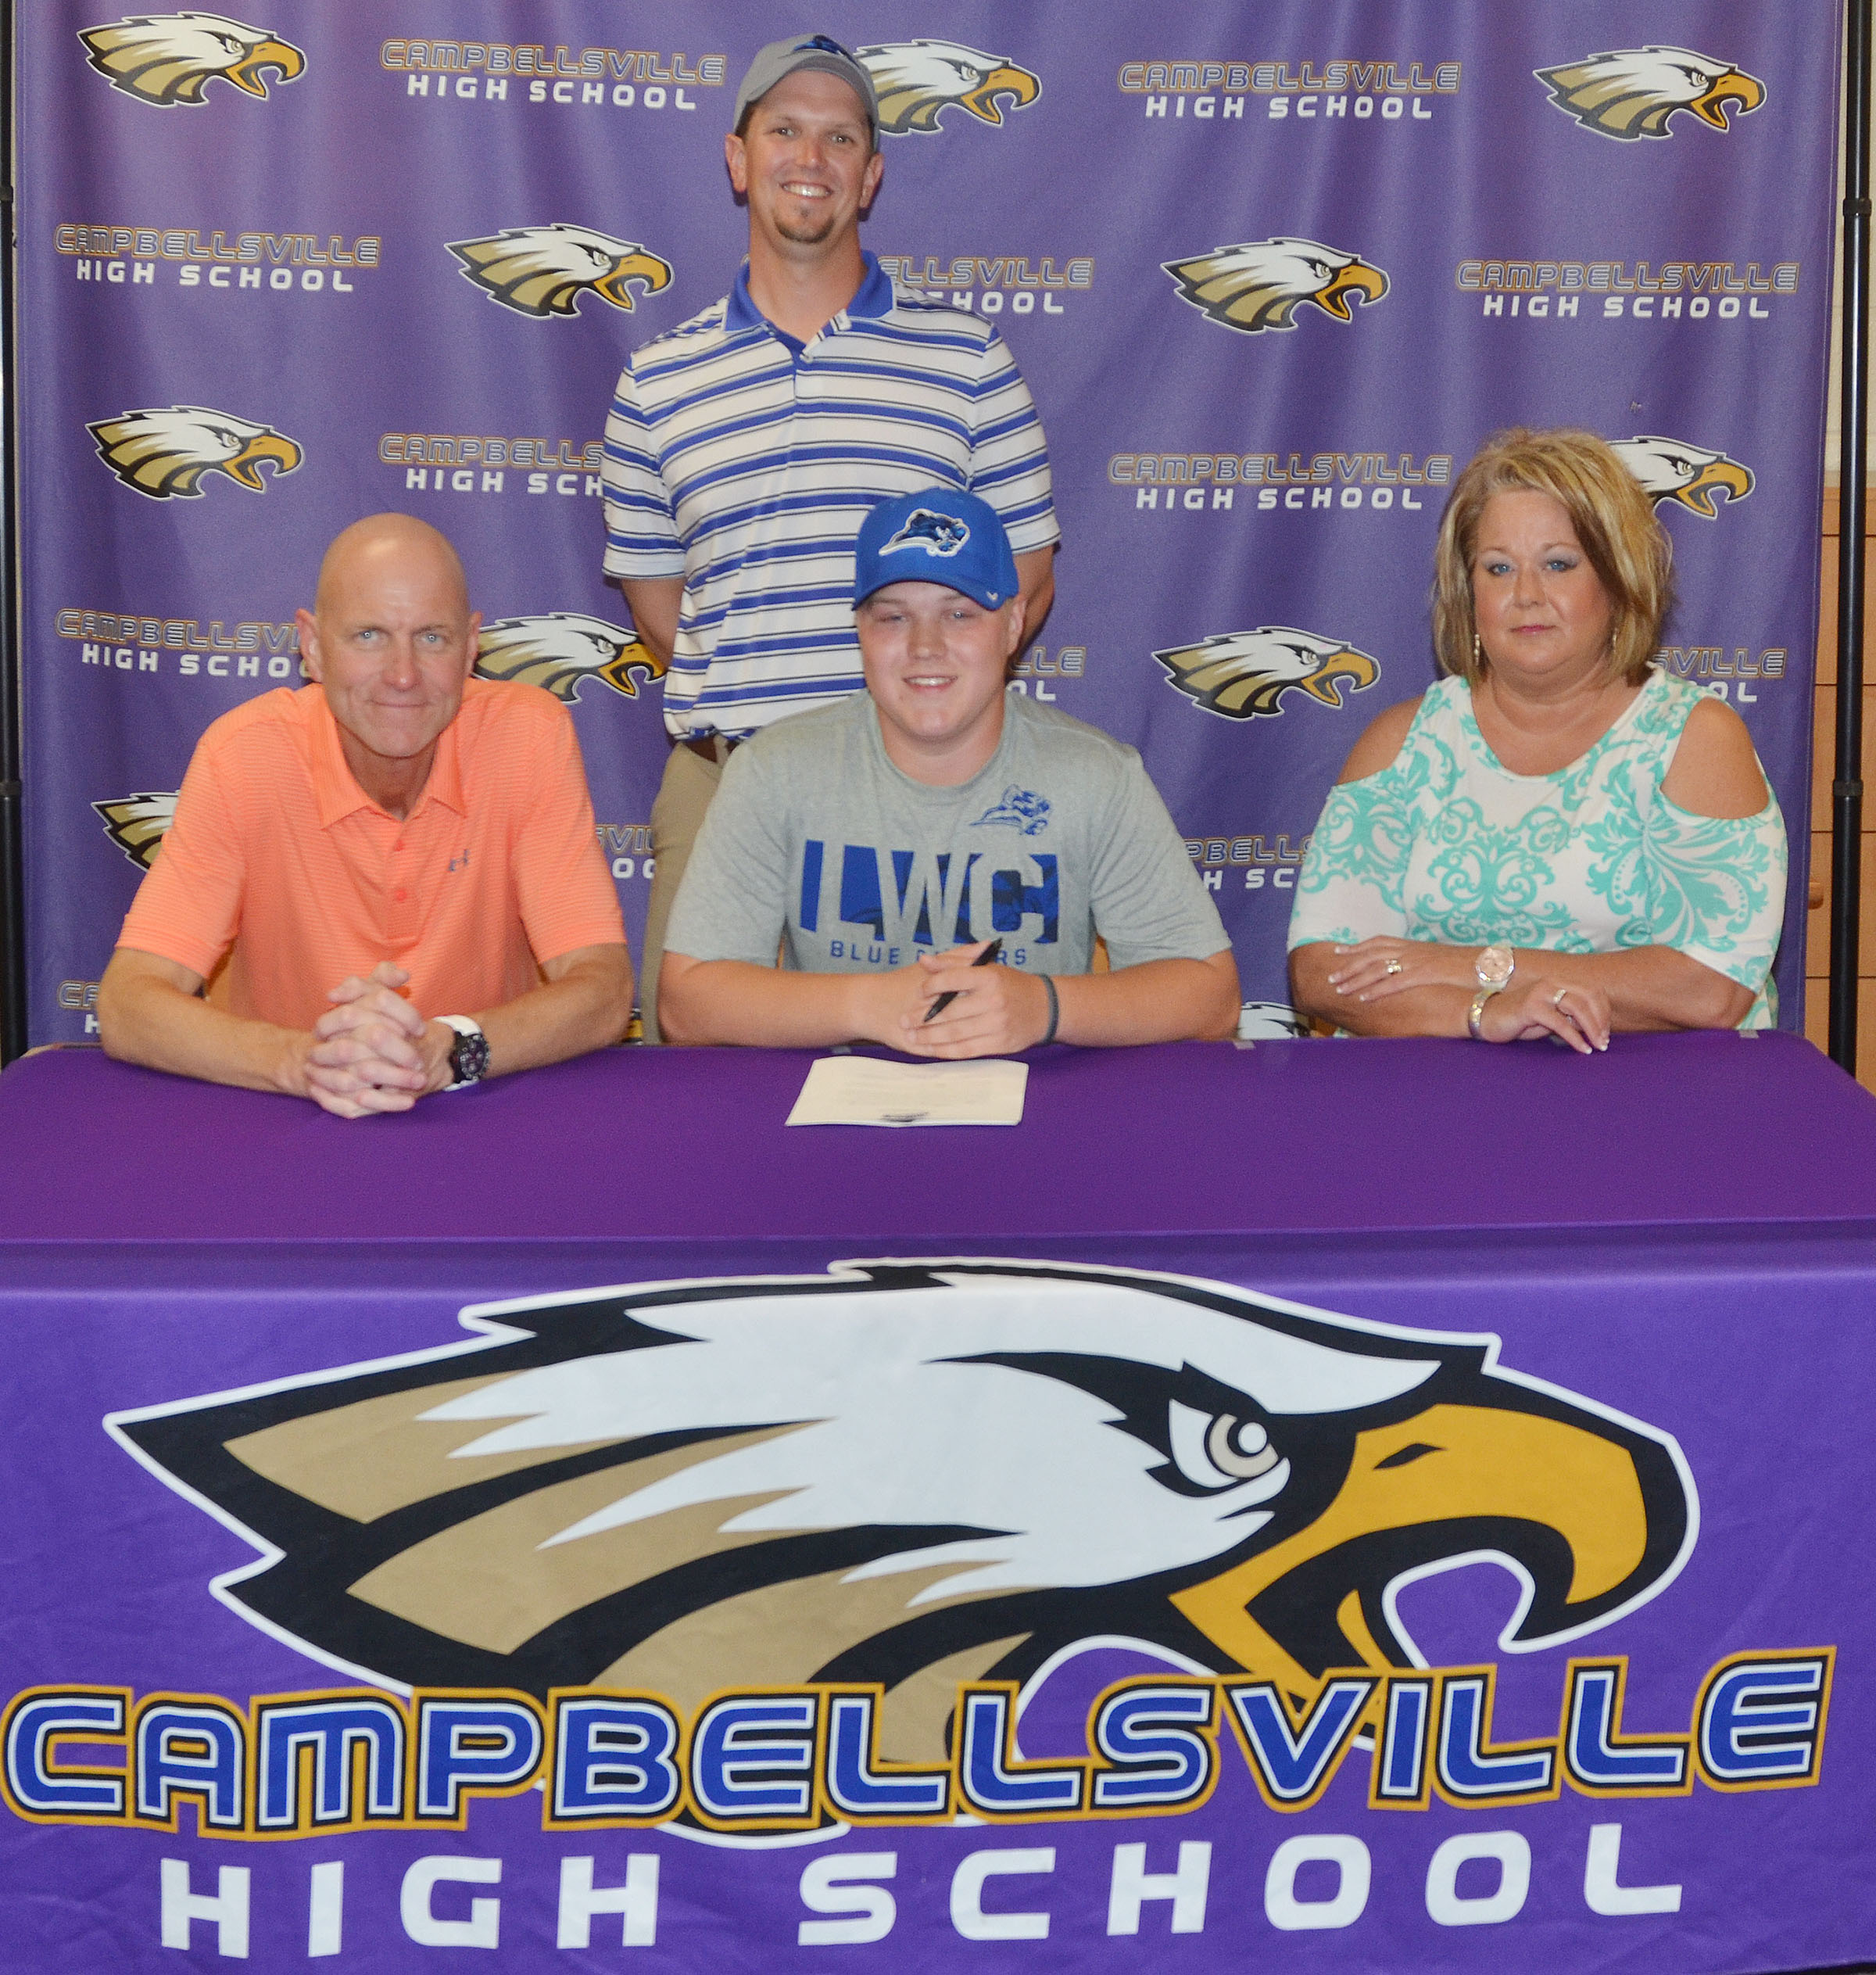 Campbellsville High School senior Noah Wagers will continue his academic and golf career this fall at Lindsey Wilson College. Wagers recently signed his letter of intent in a special ceremony with family, friends, teammates and coaches. From left are his parents, Steve and Kim Wagers, and in back is LWC golf coach Eric Wyrick.